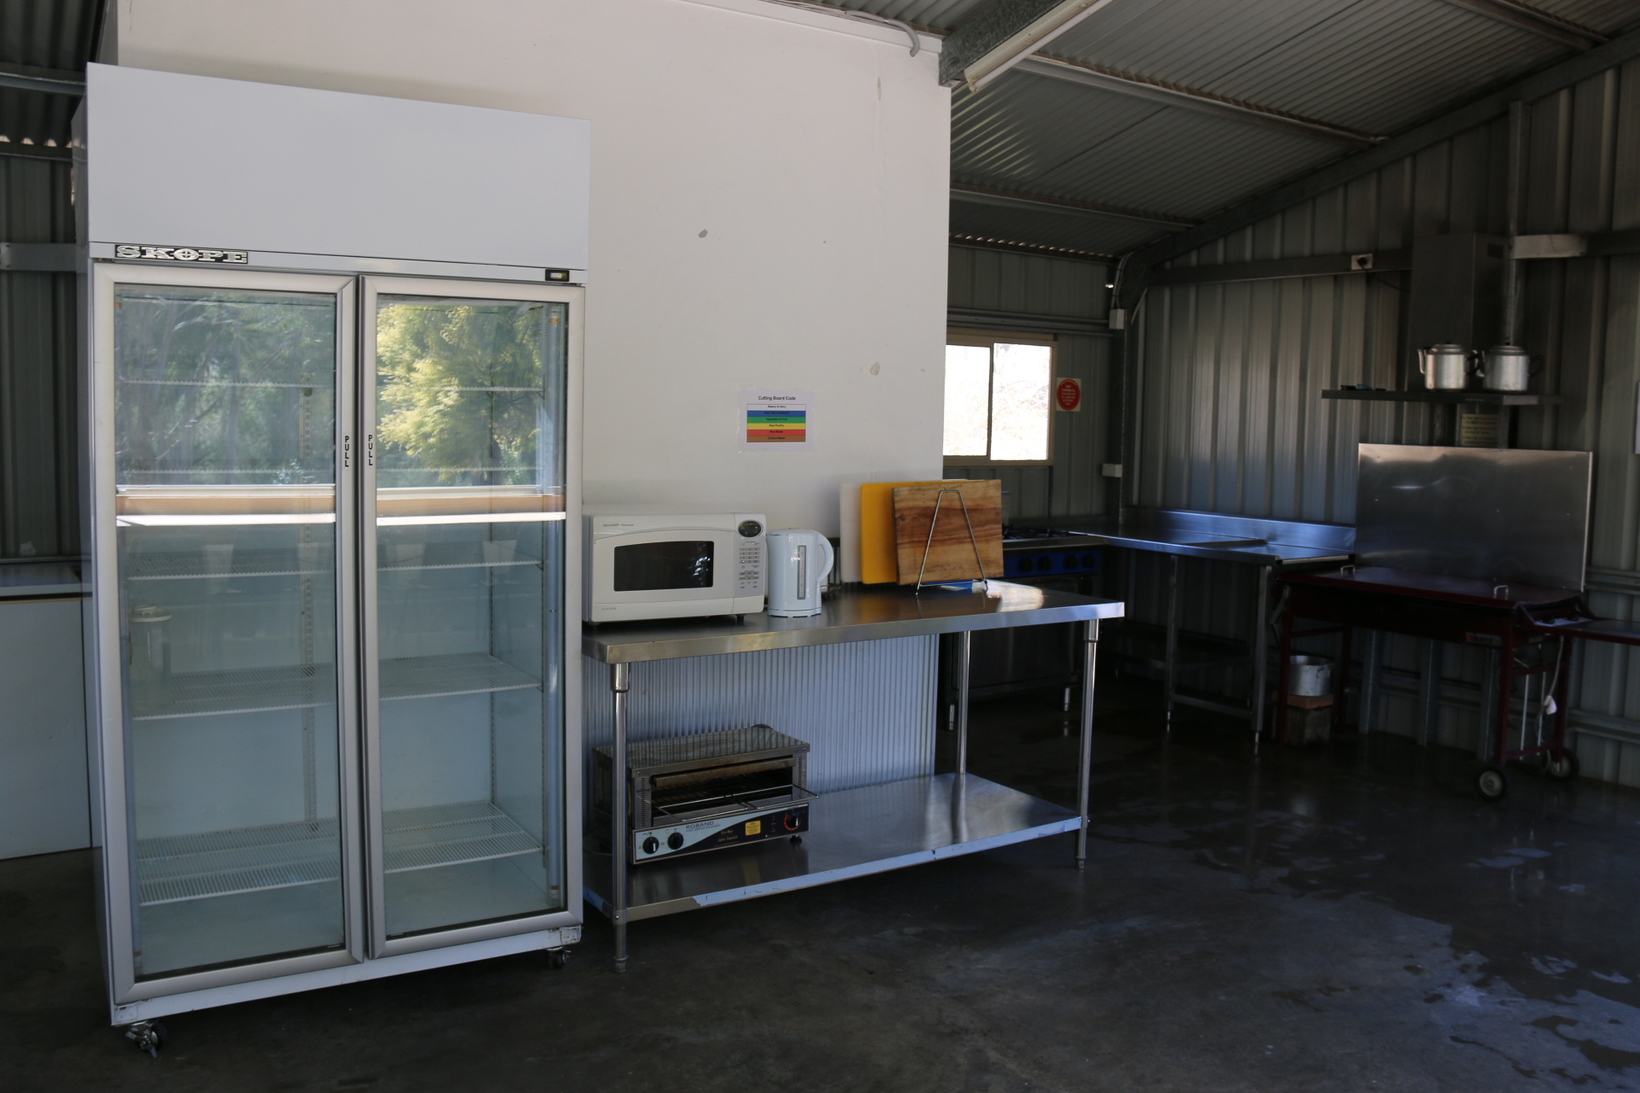 Commercial Fridge, store room with crockery, cutlery, cooking utensils, urn, toaster, microwave, kettle